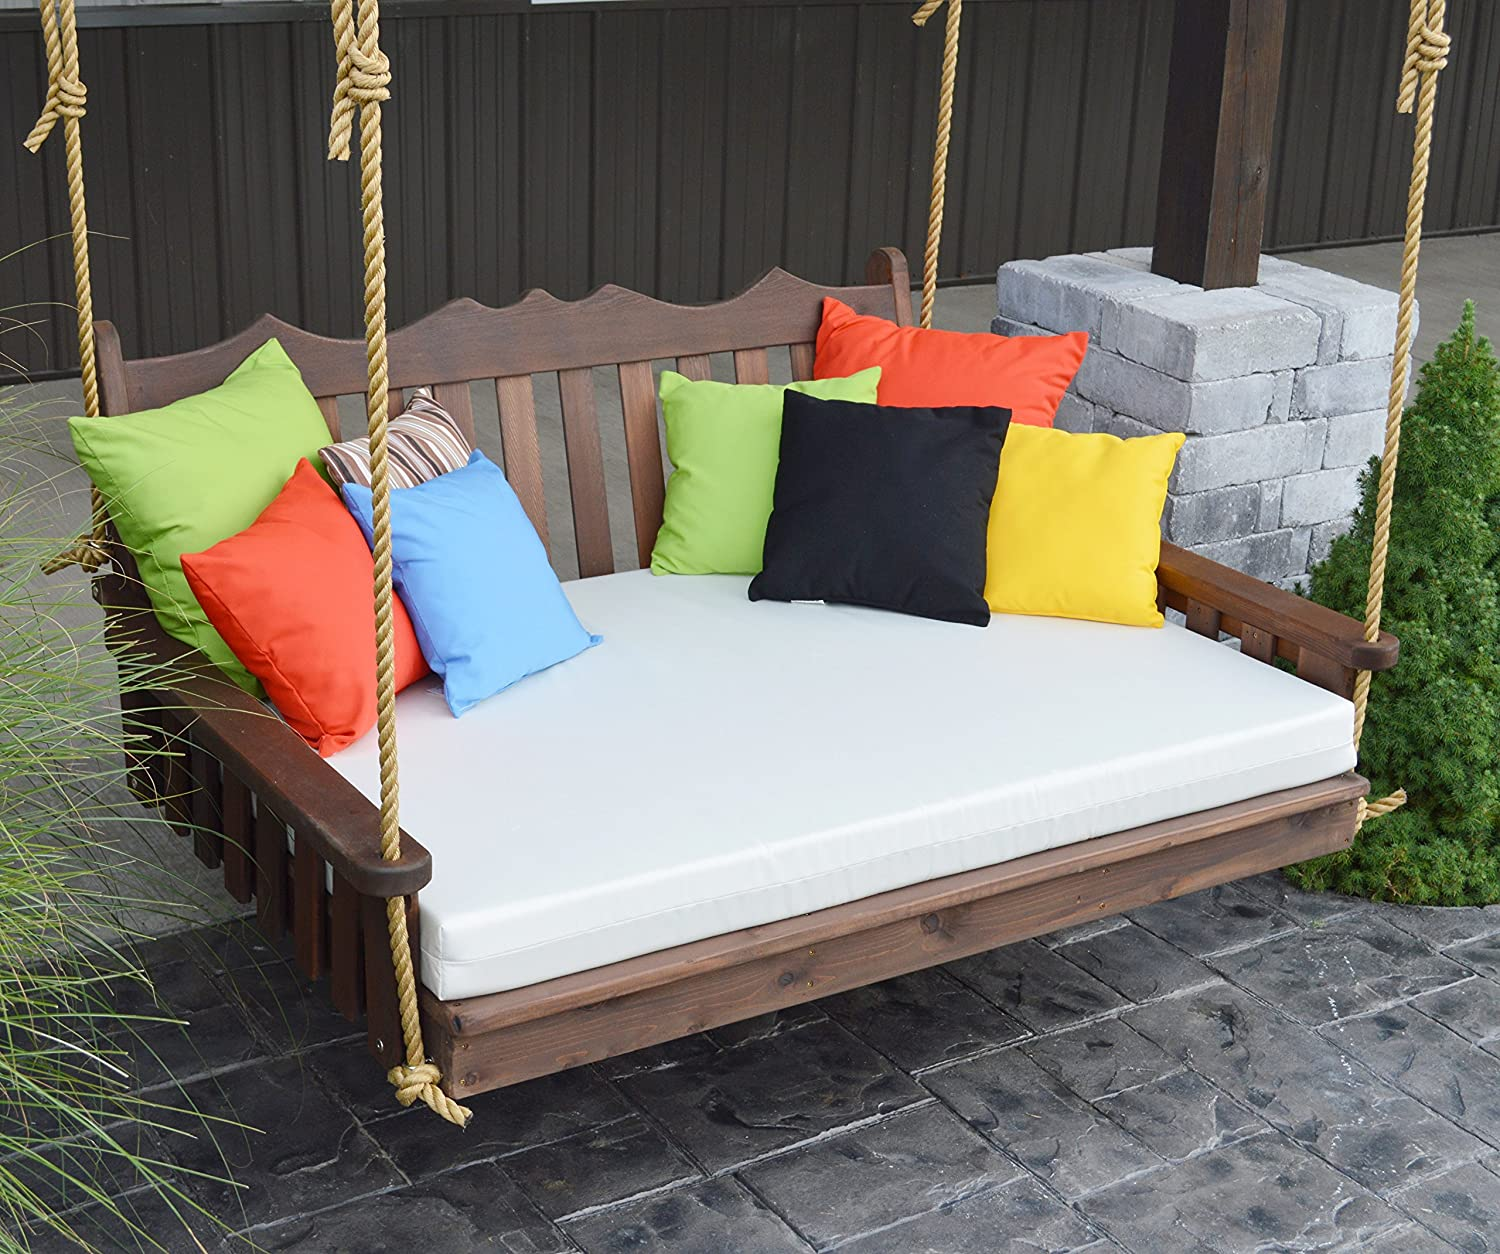 Best porch swing bed outdoor swinging daybed patio day bed rope swings hanging 3 person bench unique western red cedar outside furniture decor